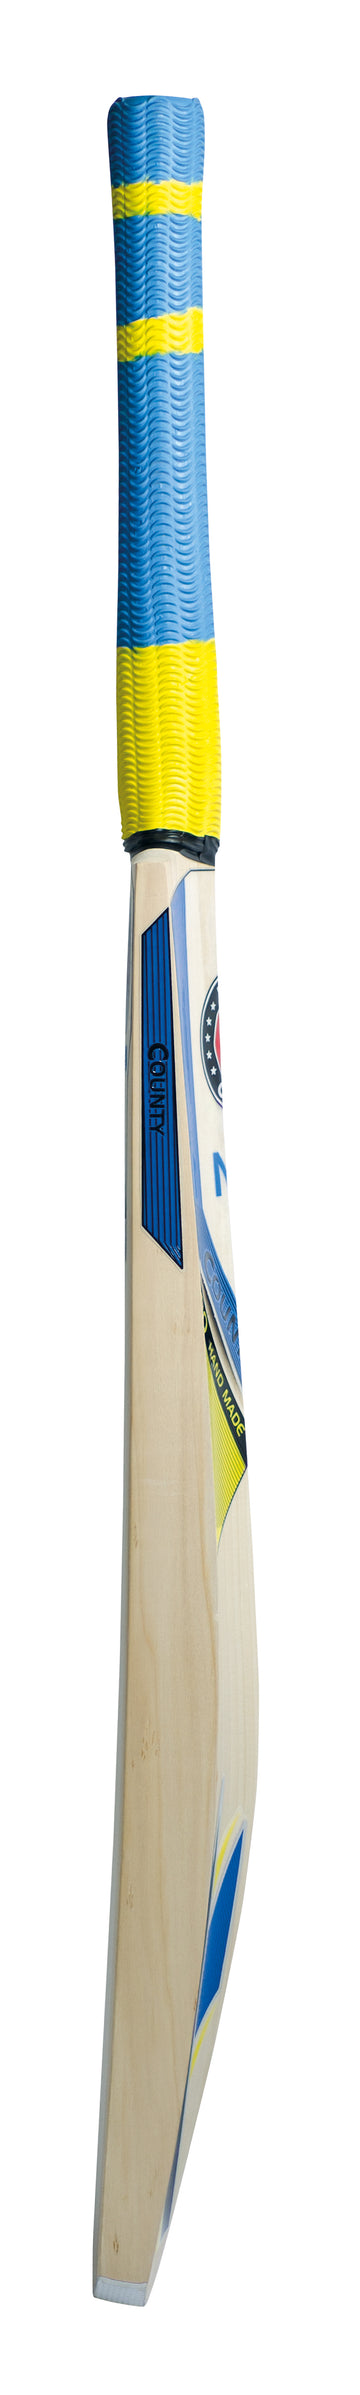 Hunts County Neo 400 Cricket Bat